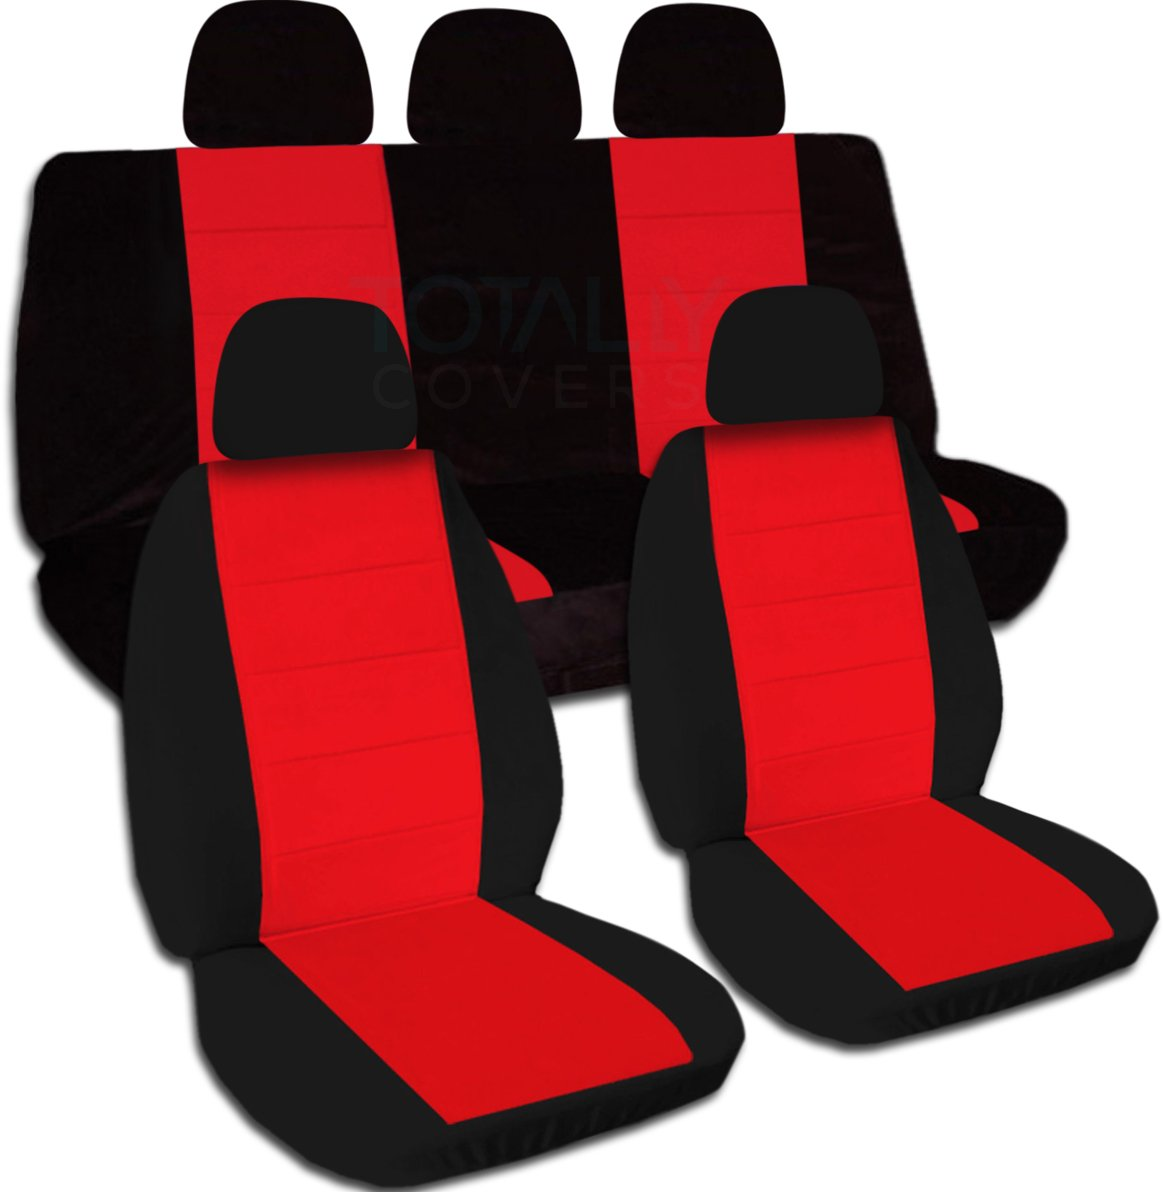 Two-Tone Car Seat Covers w 5 (2 Front + 3 Rear) Headrest Covers: Black & Red - Semi-Custom Fit - Full Set - Will Make Fit Any Car/Truck/Van/SUV (21 Colors)